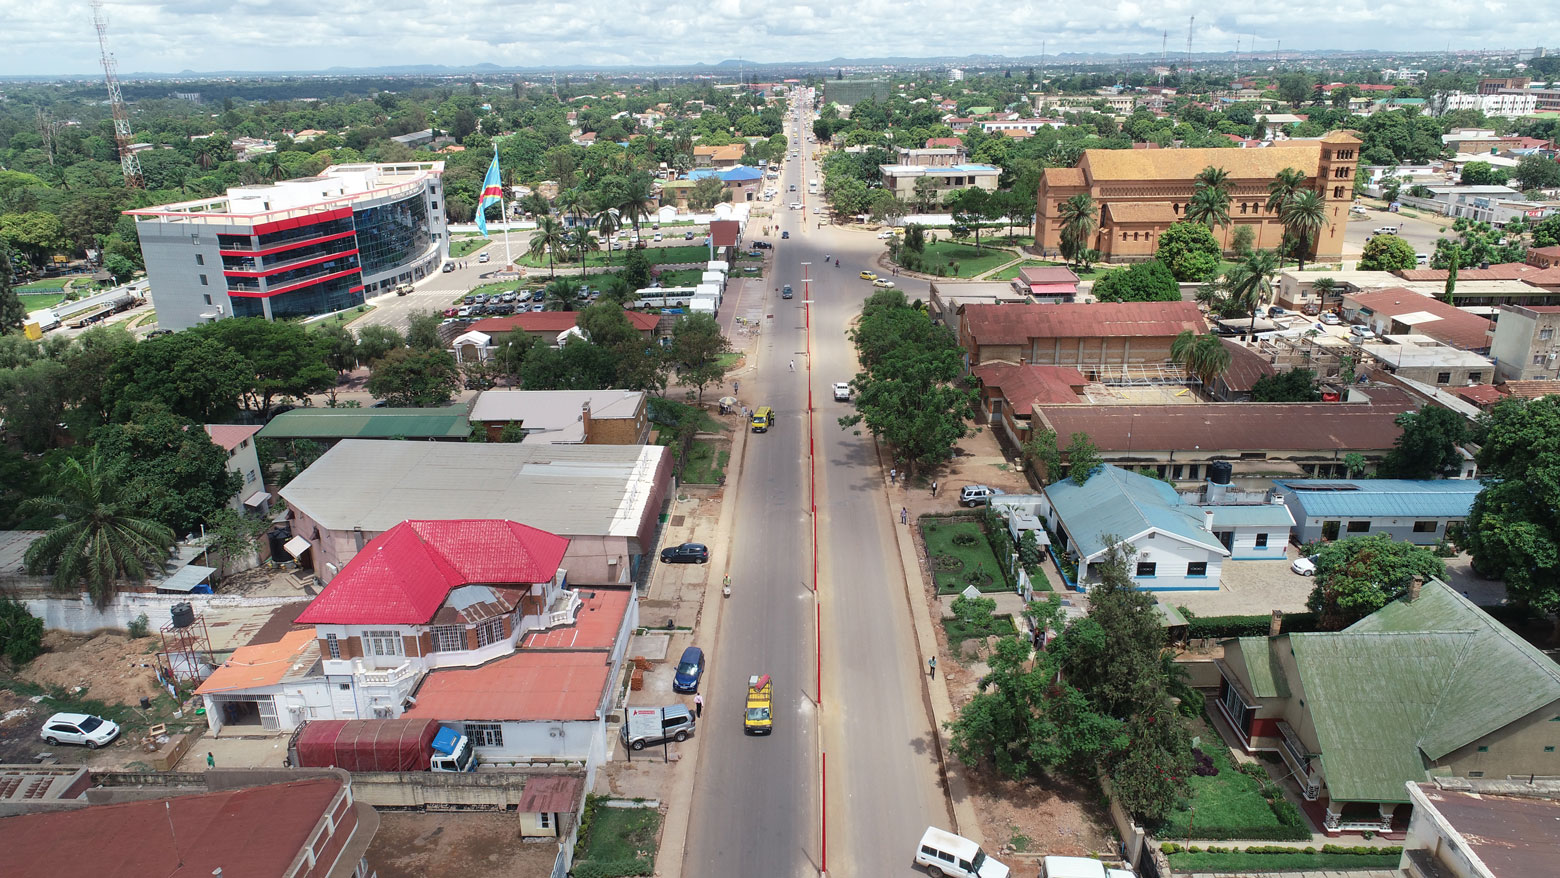 Avenue Kasavubu with the governorate and the cathedral of Lubumbashi in the DRC.